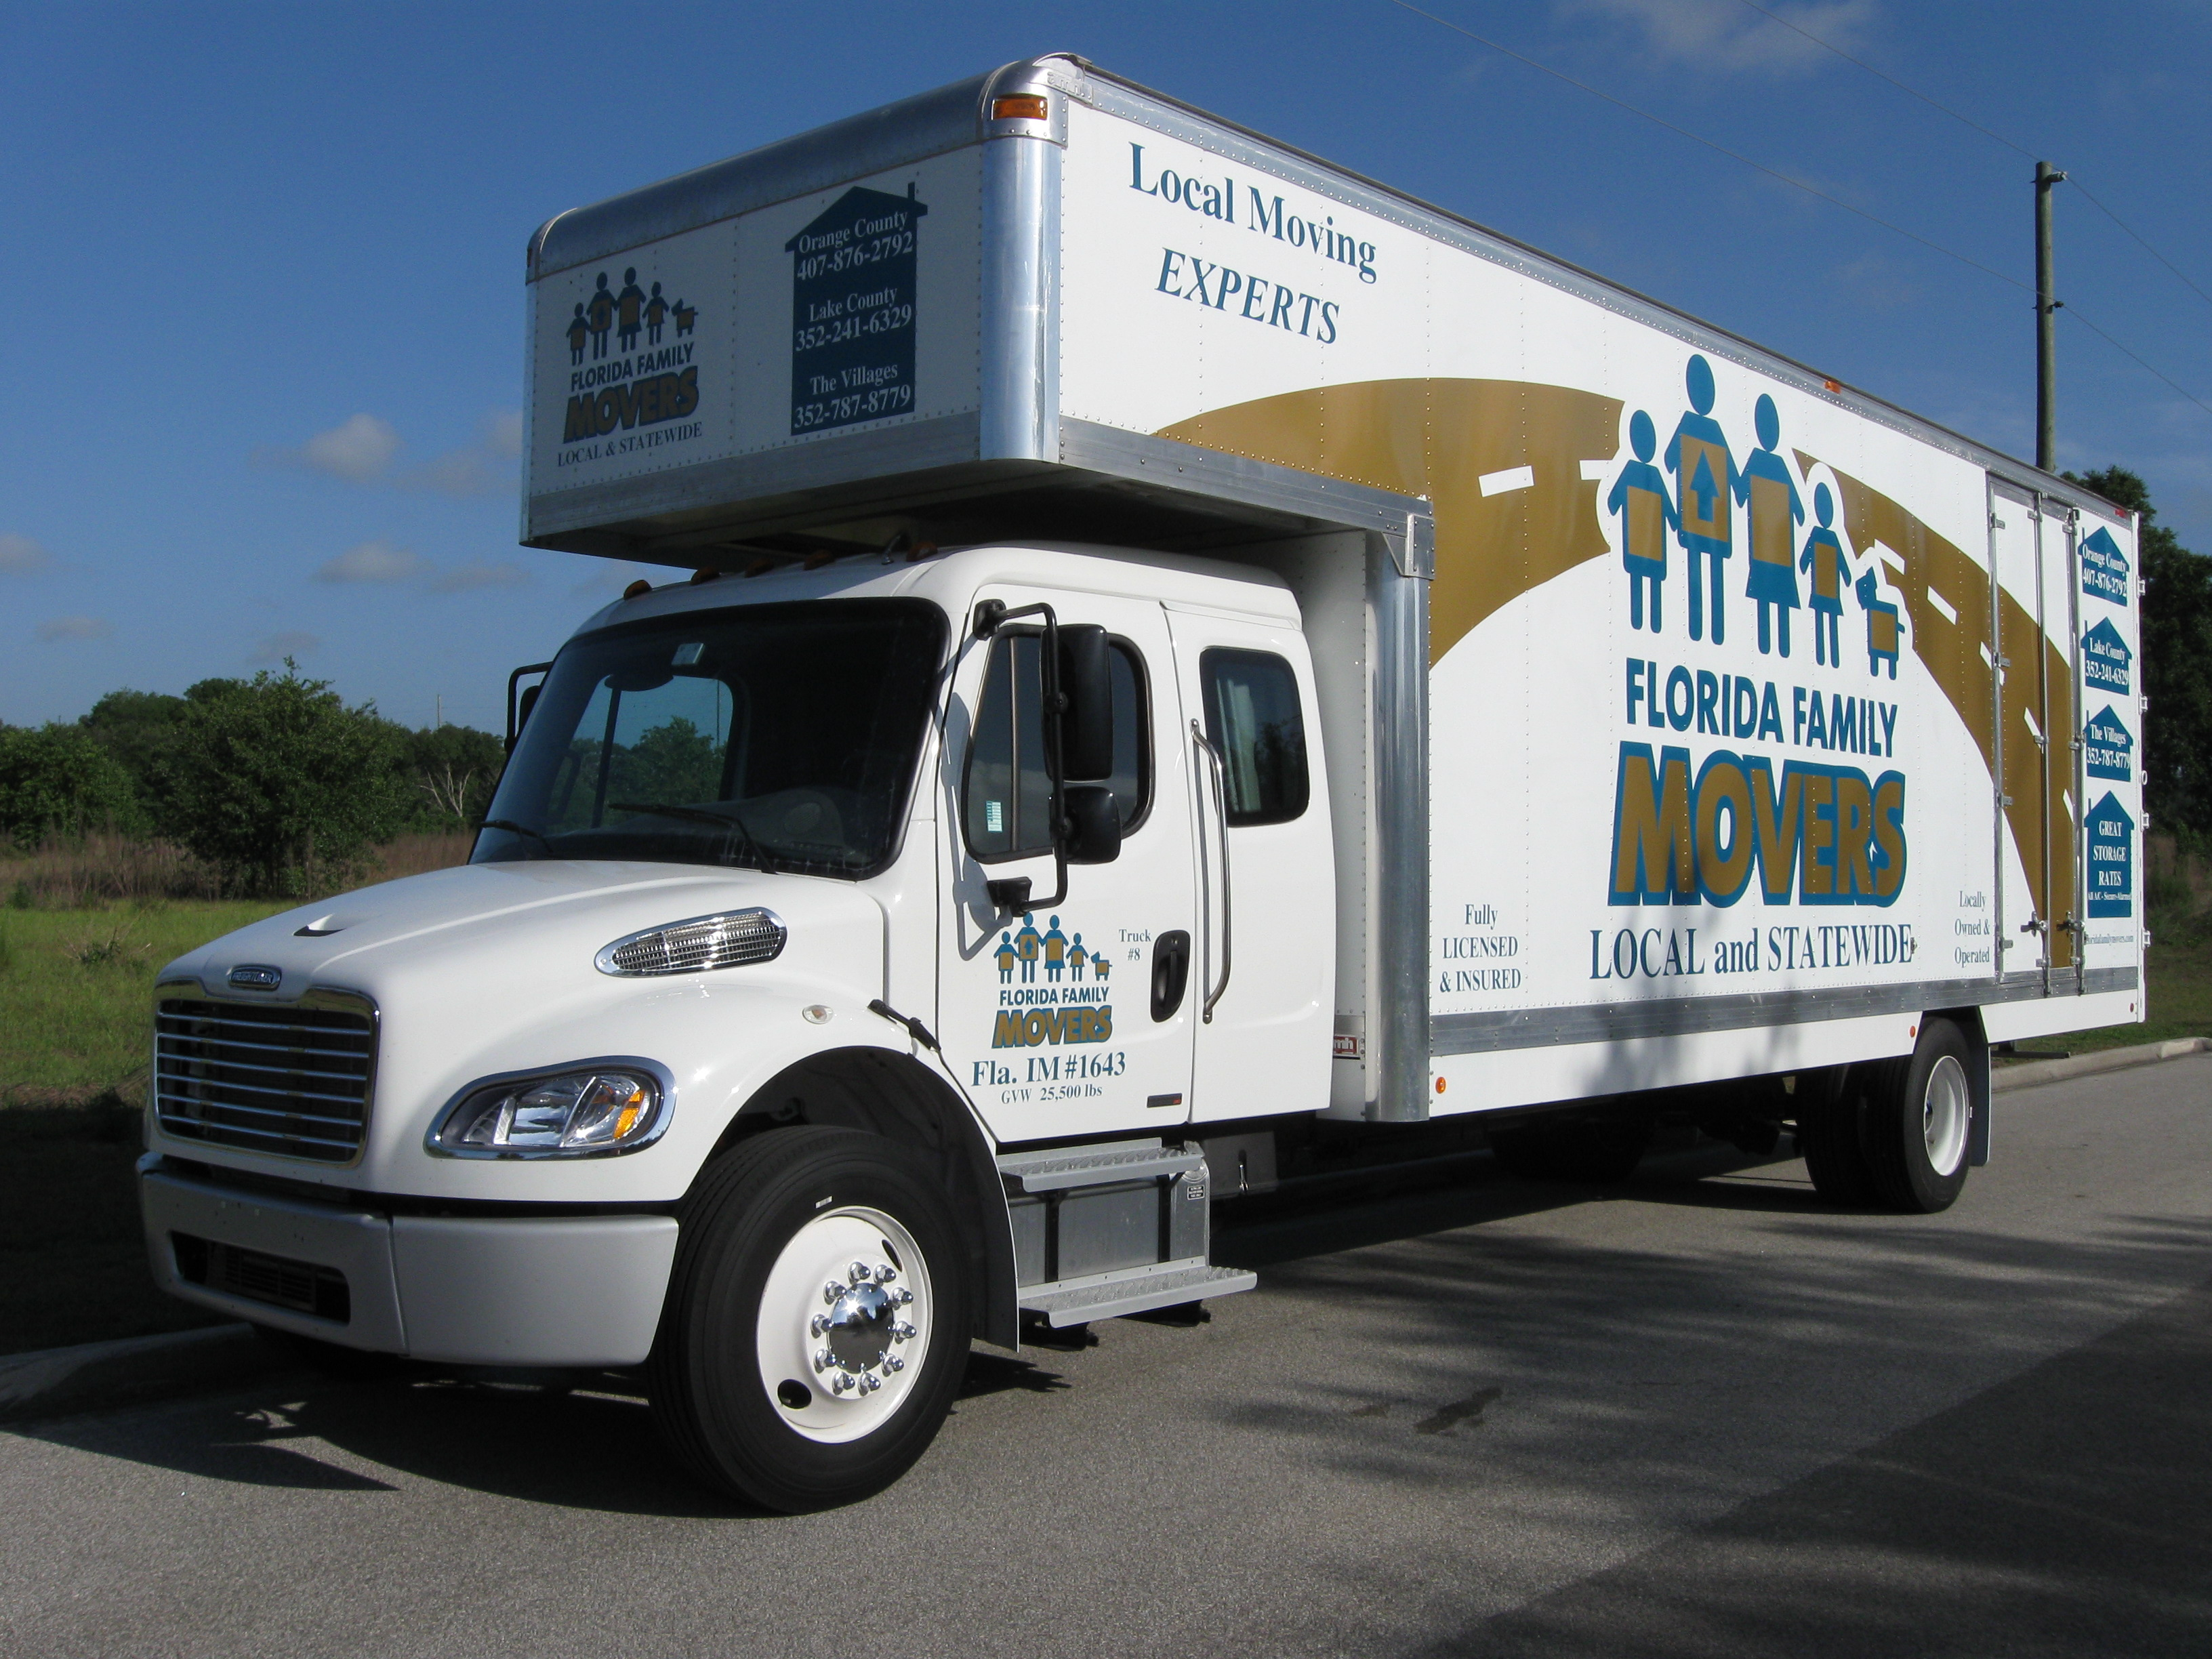 Florida Family Movers